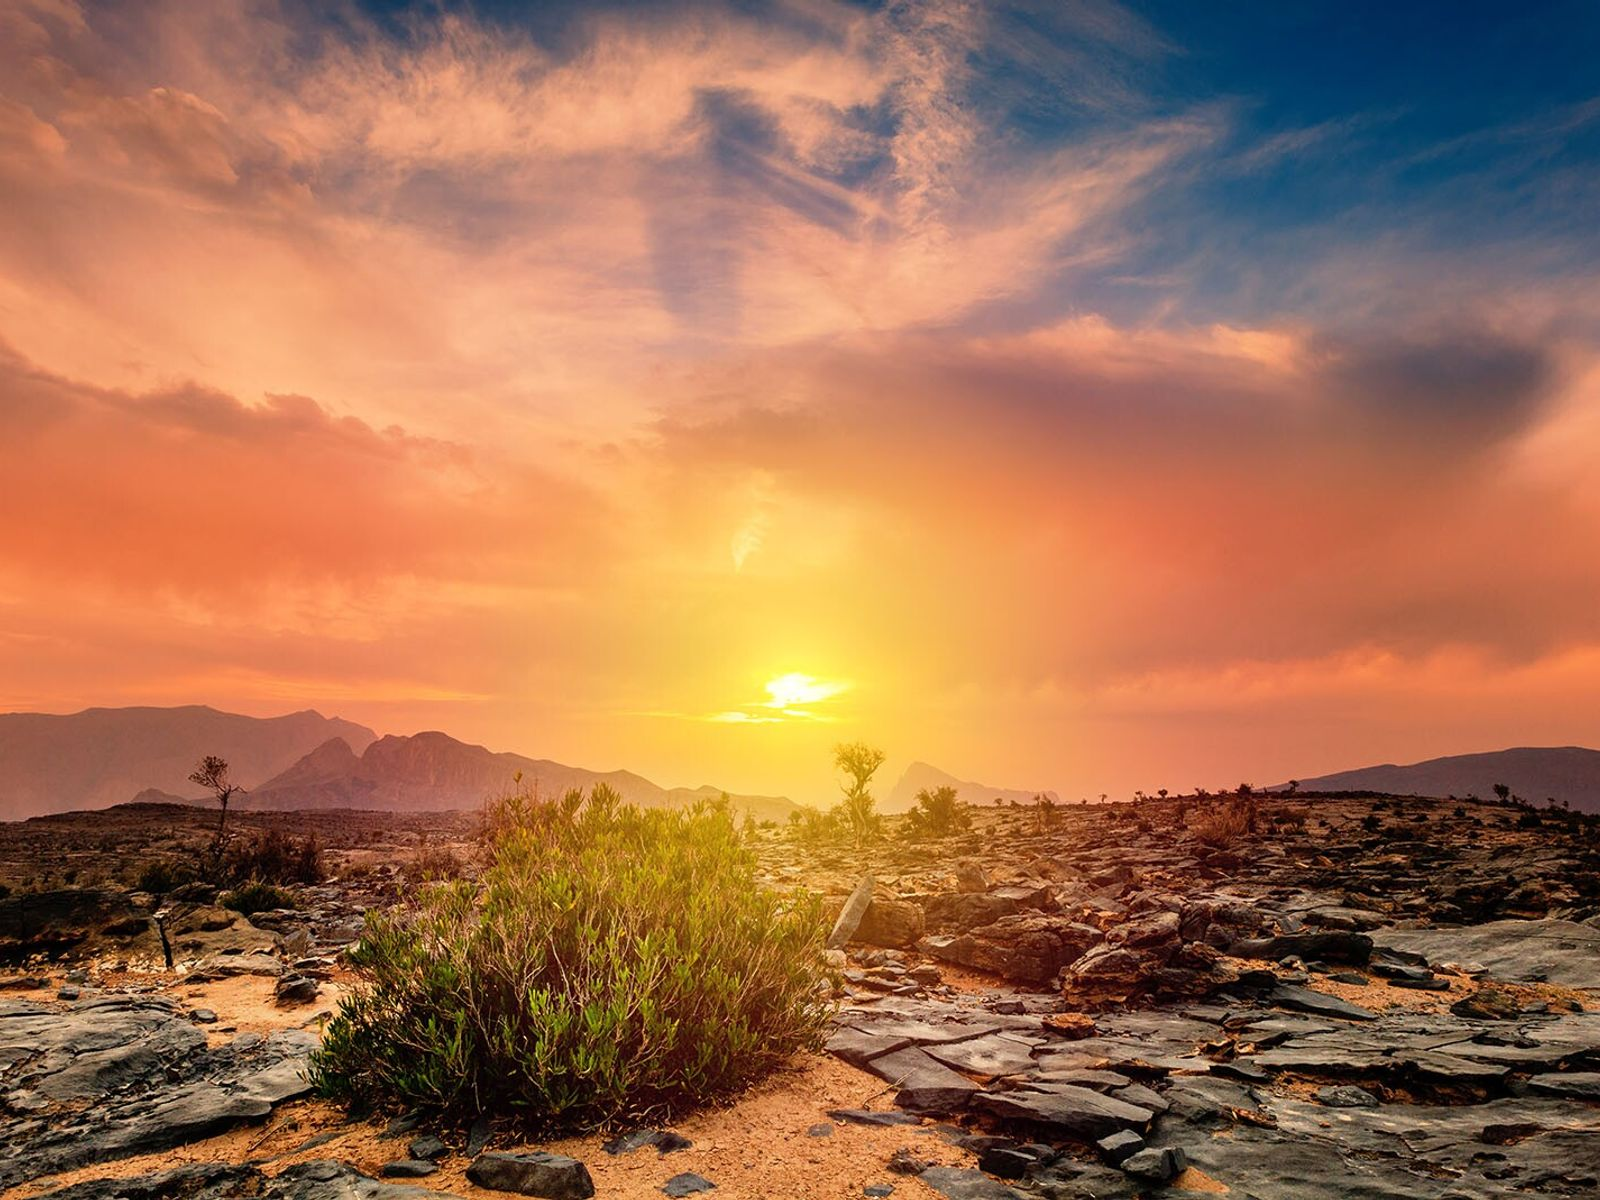 Oman's spectacular landscapes range from vast mountain ranges to rippling swathes of sand.